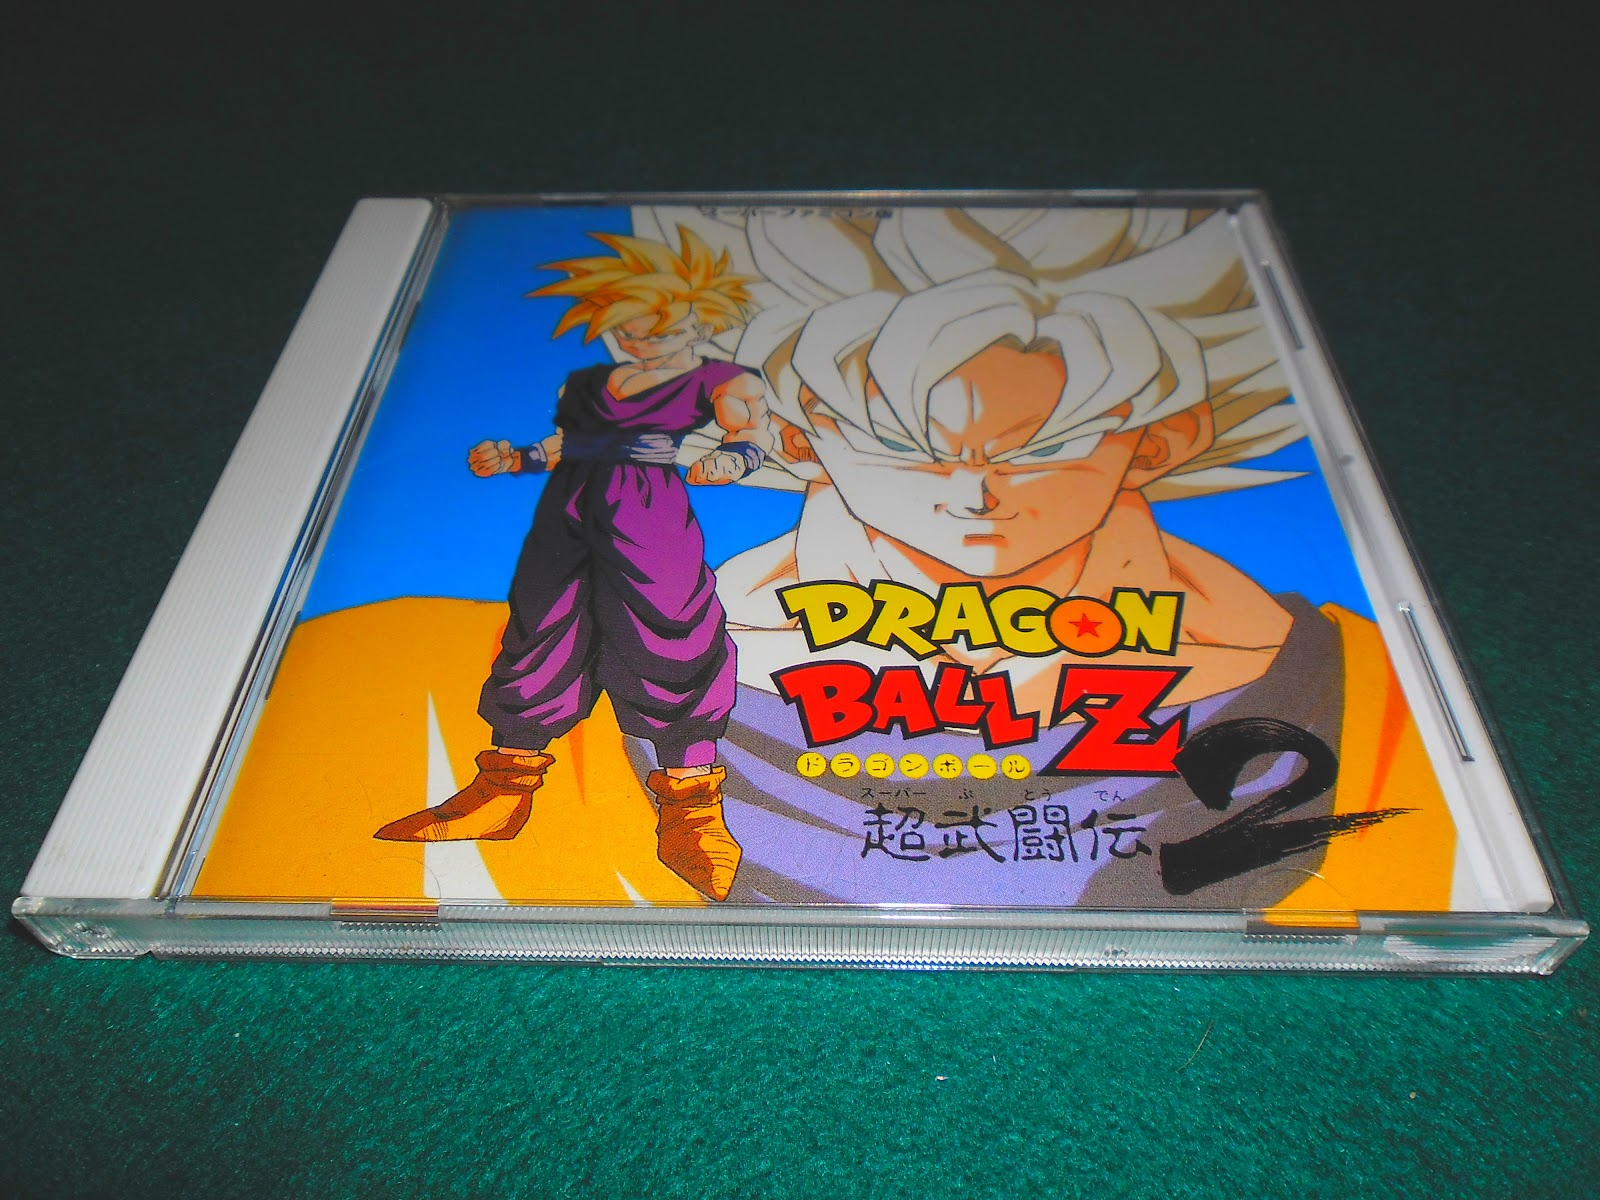 Dragon Ball Z : La Légende Saien - Fiche de jeu Super+Butouden+2+Music+Game+-+01